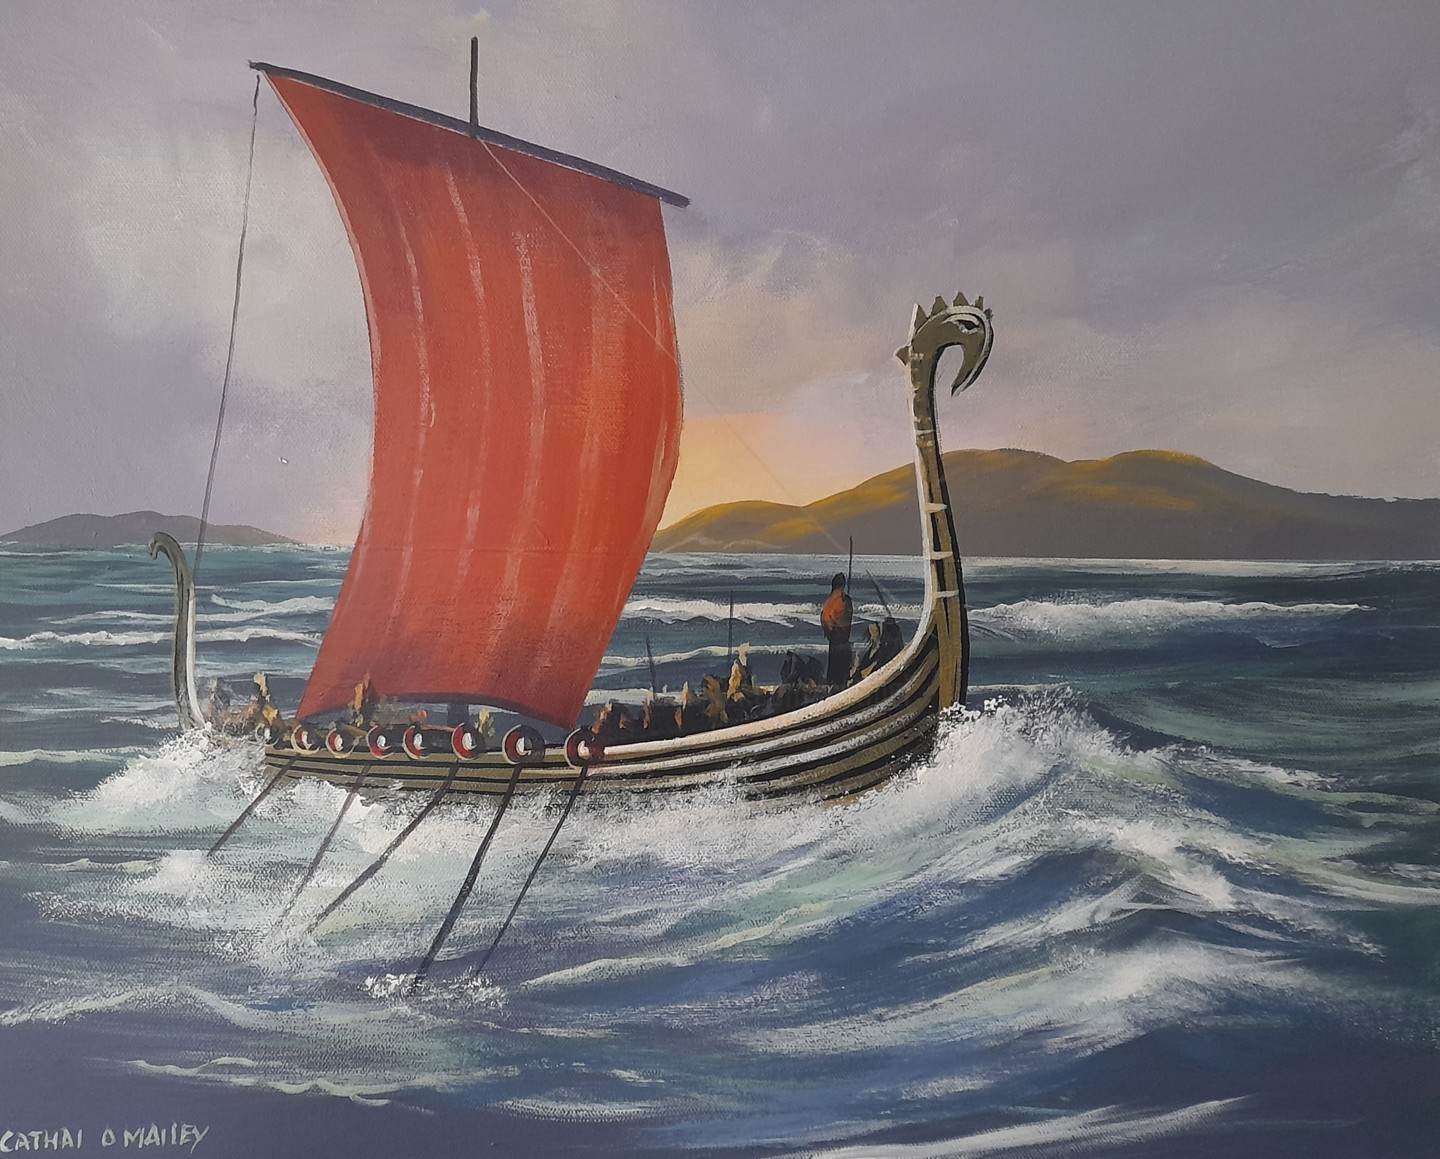 Cathal O Malley - Vikings off kerry coast